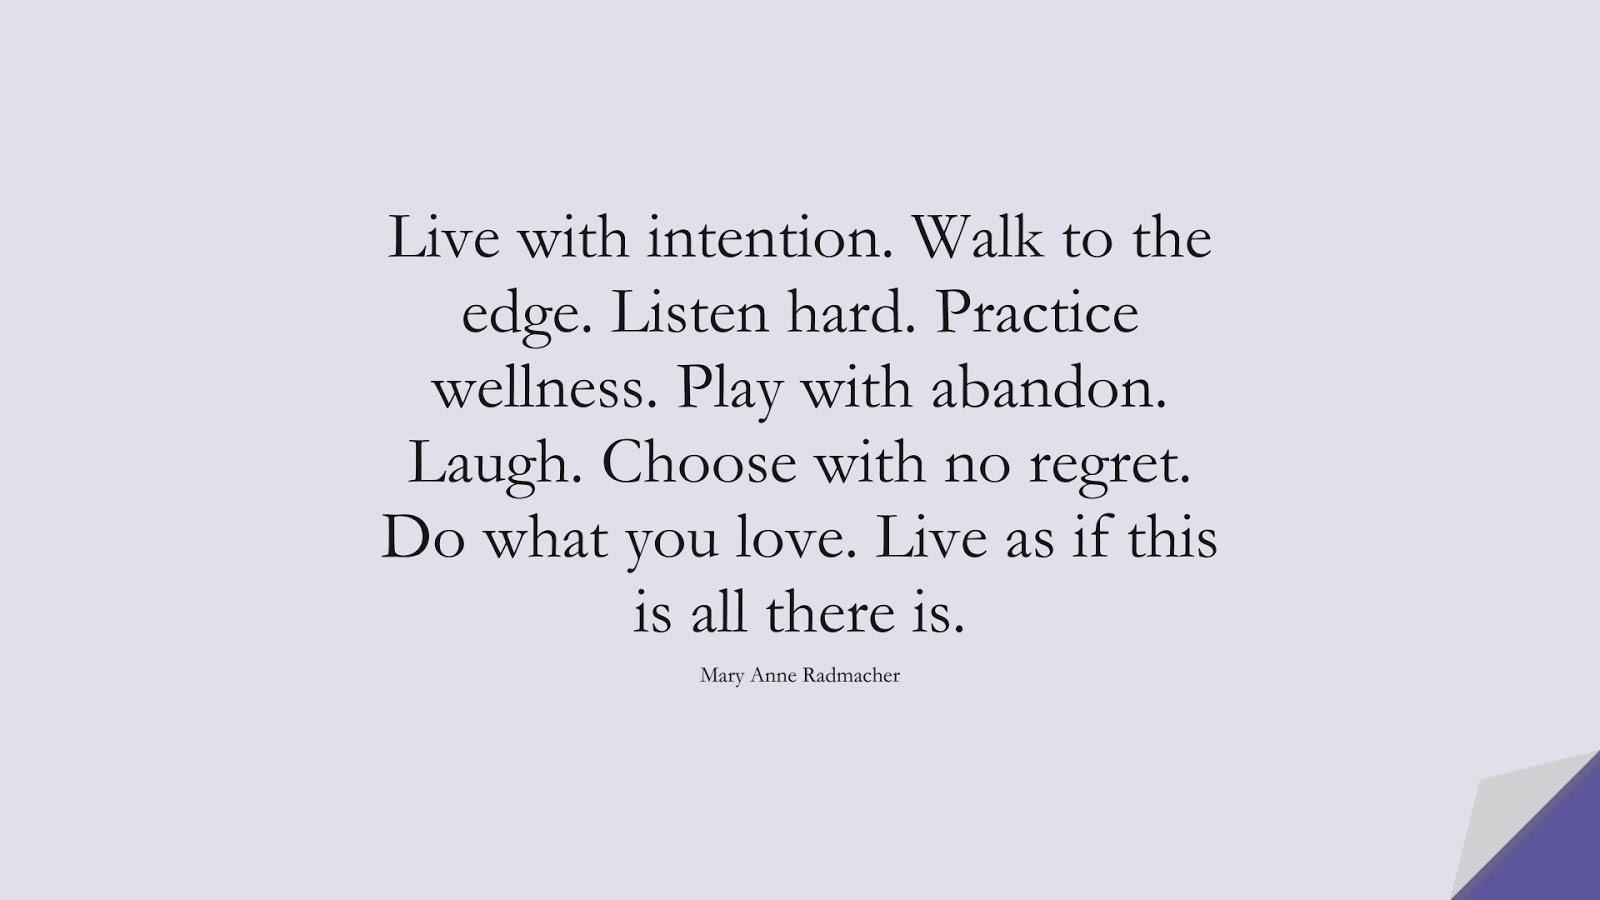 Live with intention. Walk to the edge. Listen hard. Practice wellness. Play with abandon. Laugh. Choose with no regret. Do what you love. Live as if this is all there is. (Mary Anne Radmacher);  #HappinessQuotes